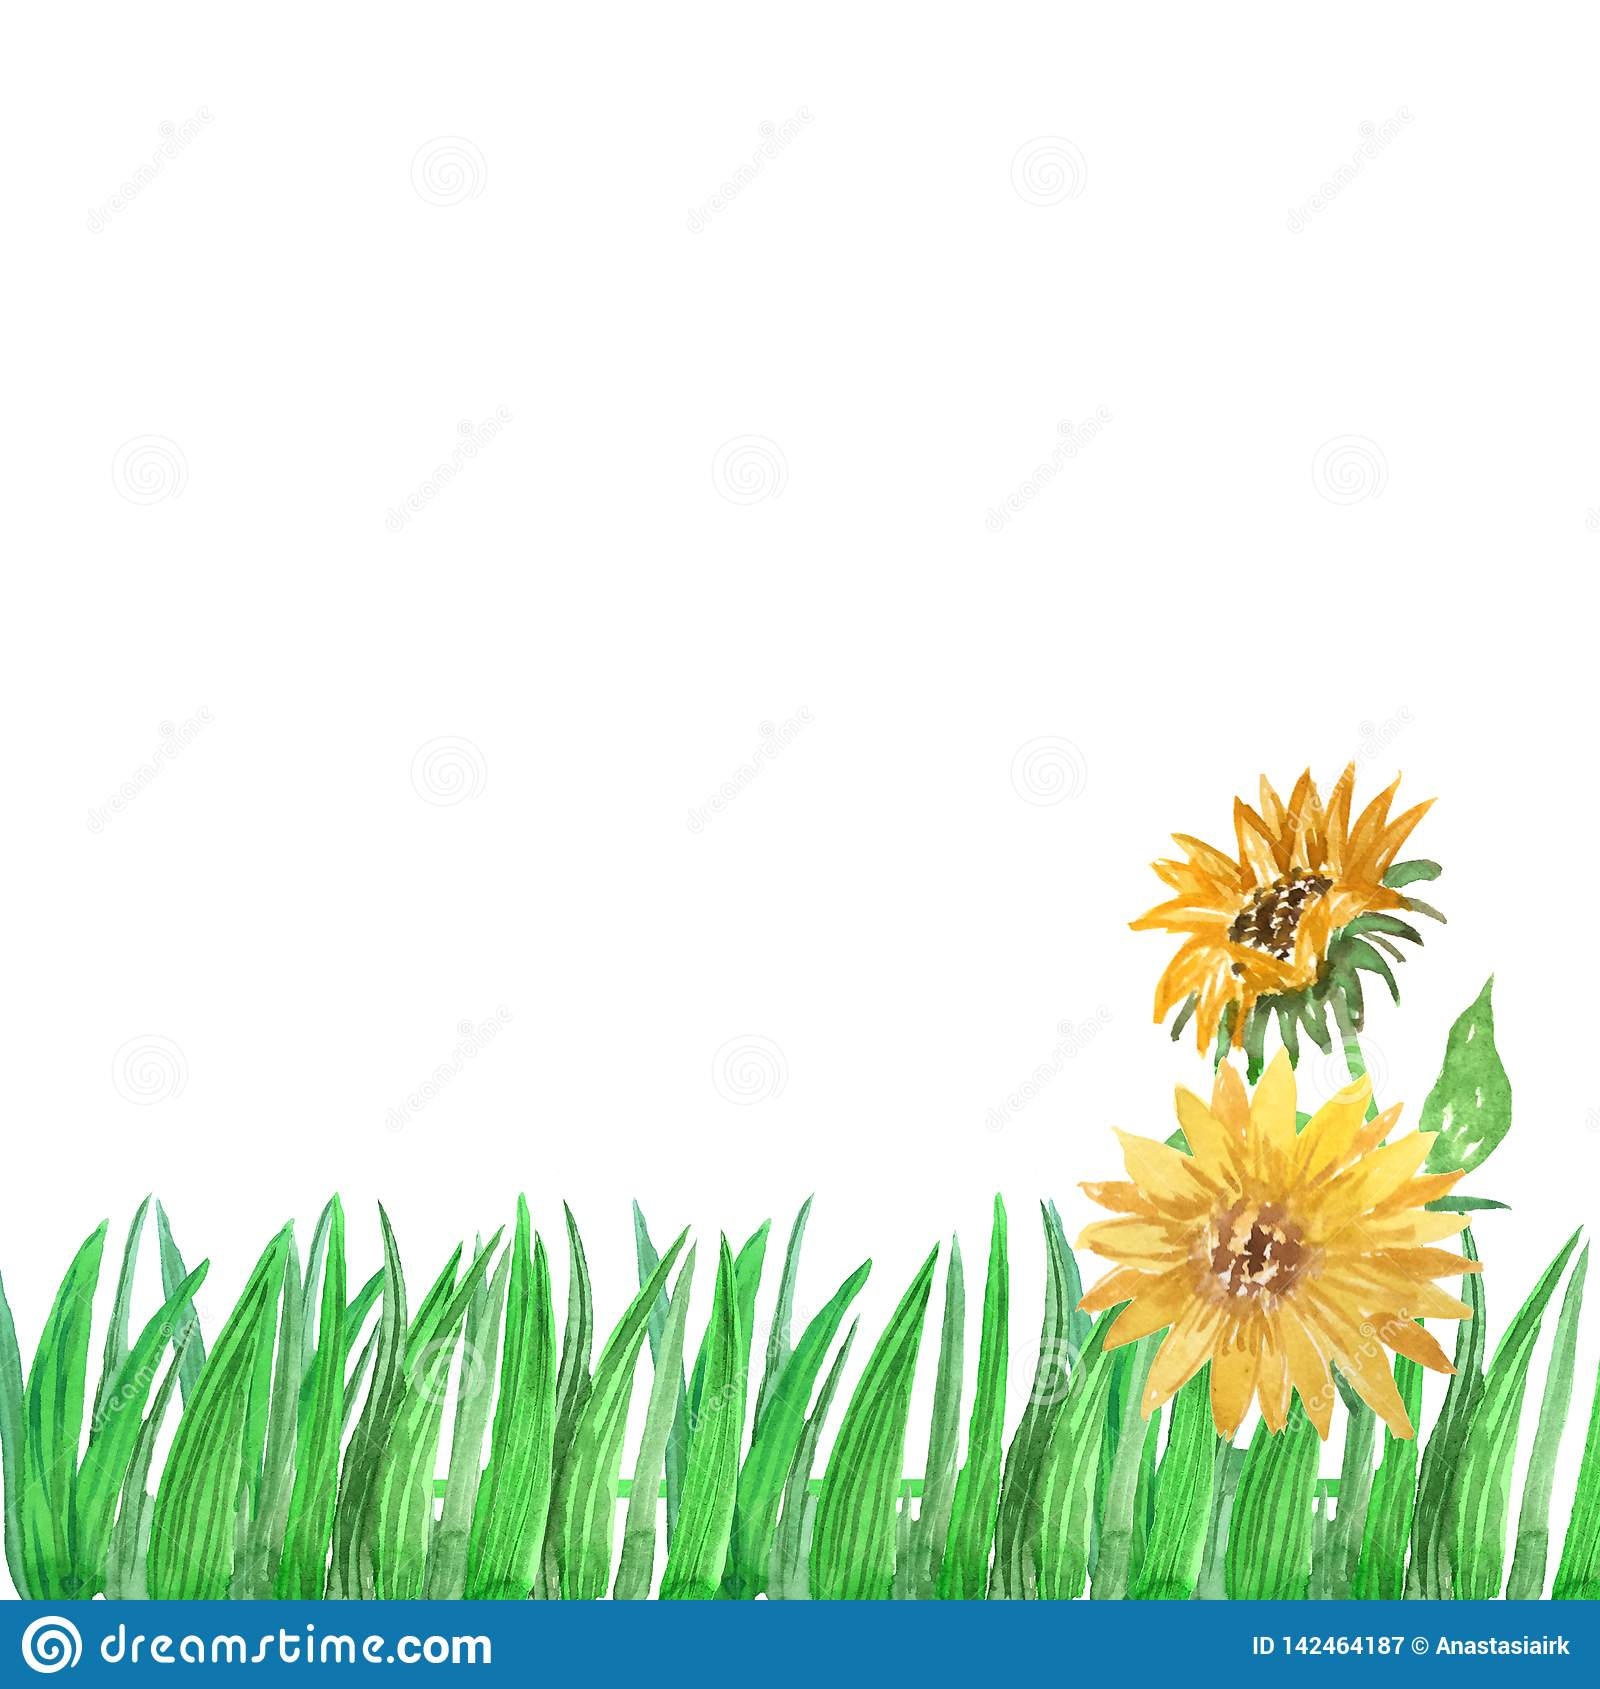 Watercolor grass frame with sunflowers on a white background